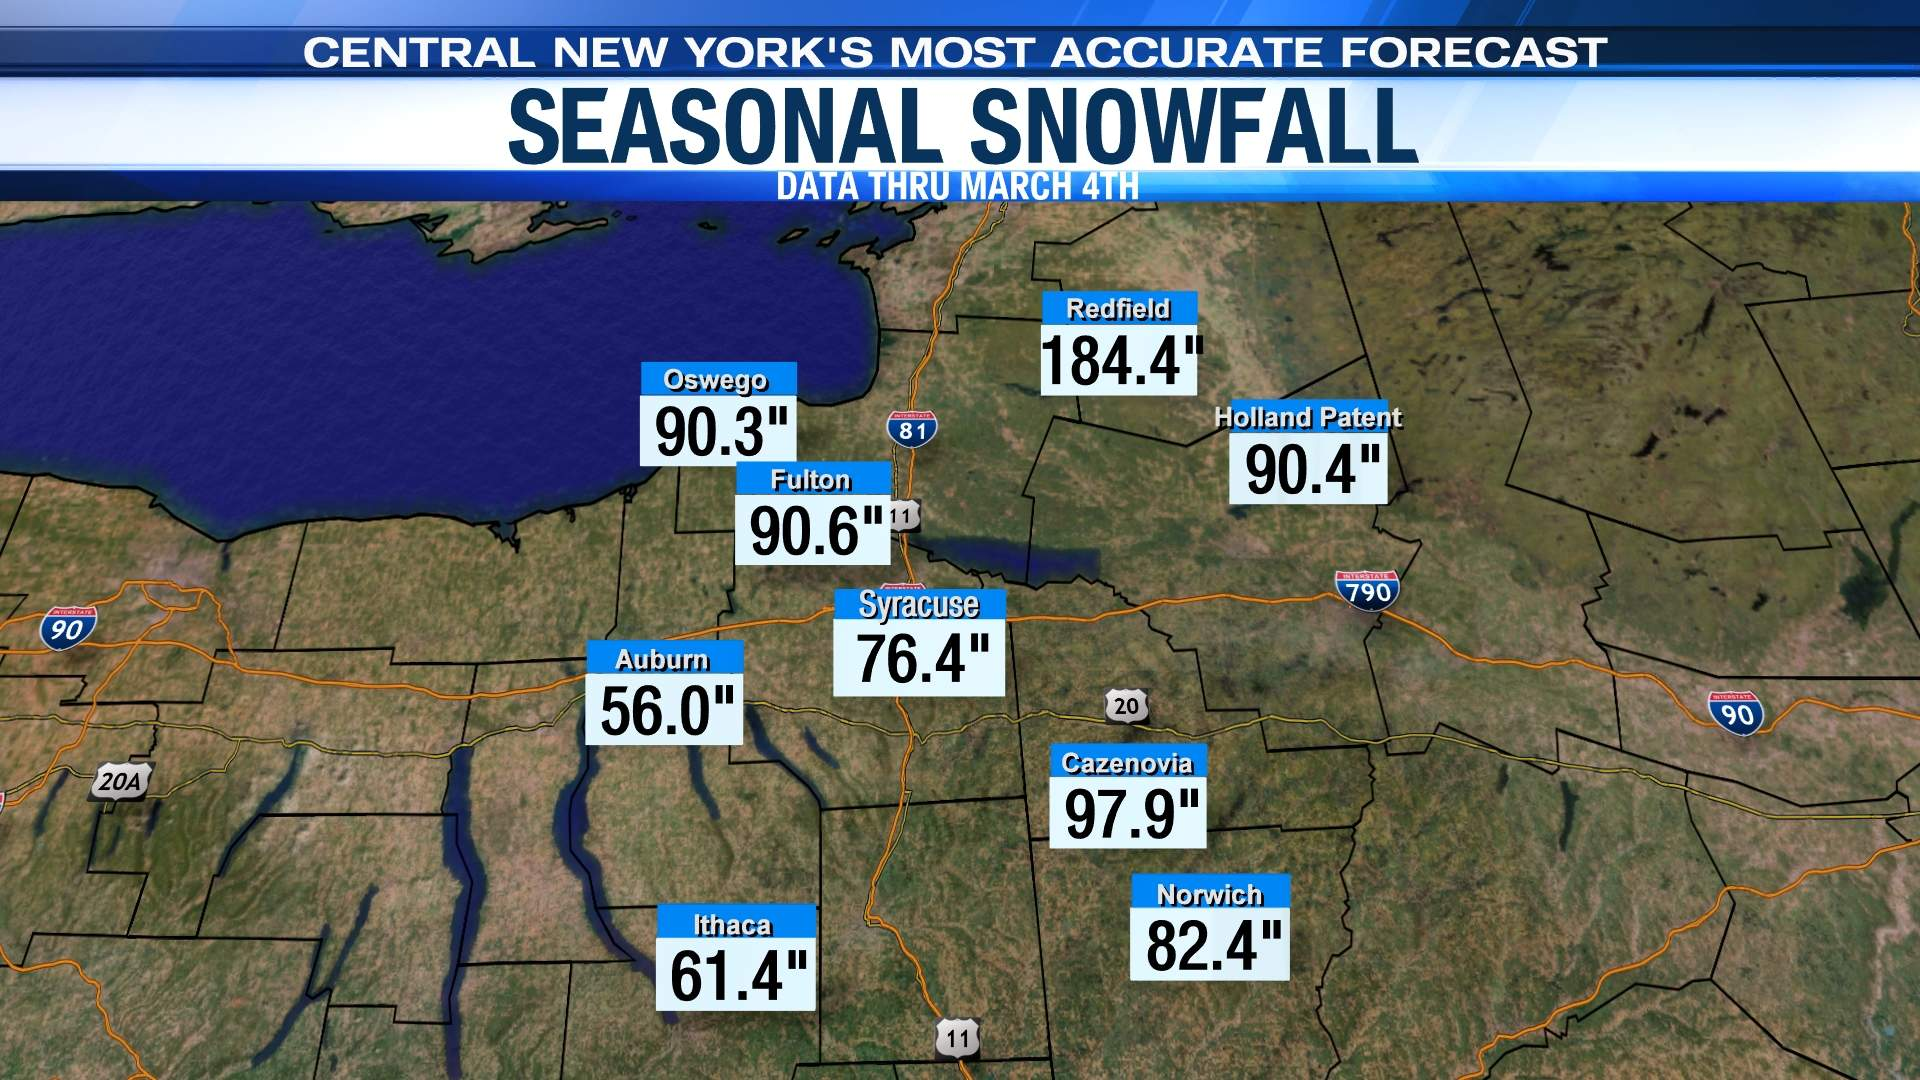 Central New York Seasonal Snowfall Map